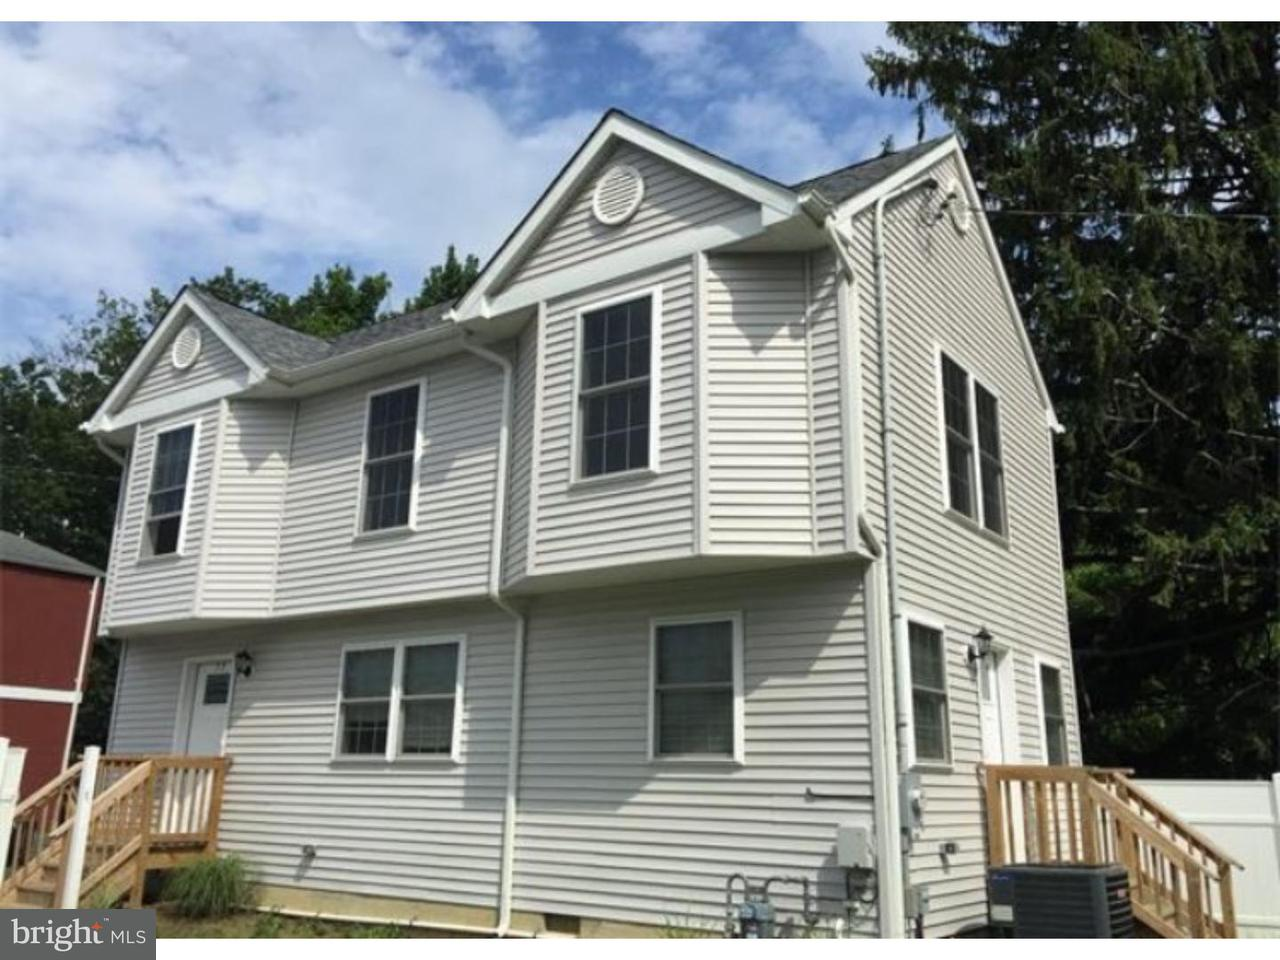 Townhouse for Rent at 99 PENNSYLVANIA Avenue Ewing Township, New Jersey 08638 United StatesMunicipality: Ewing Township